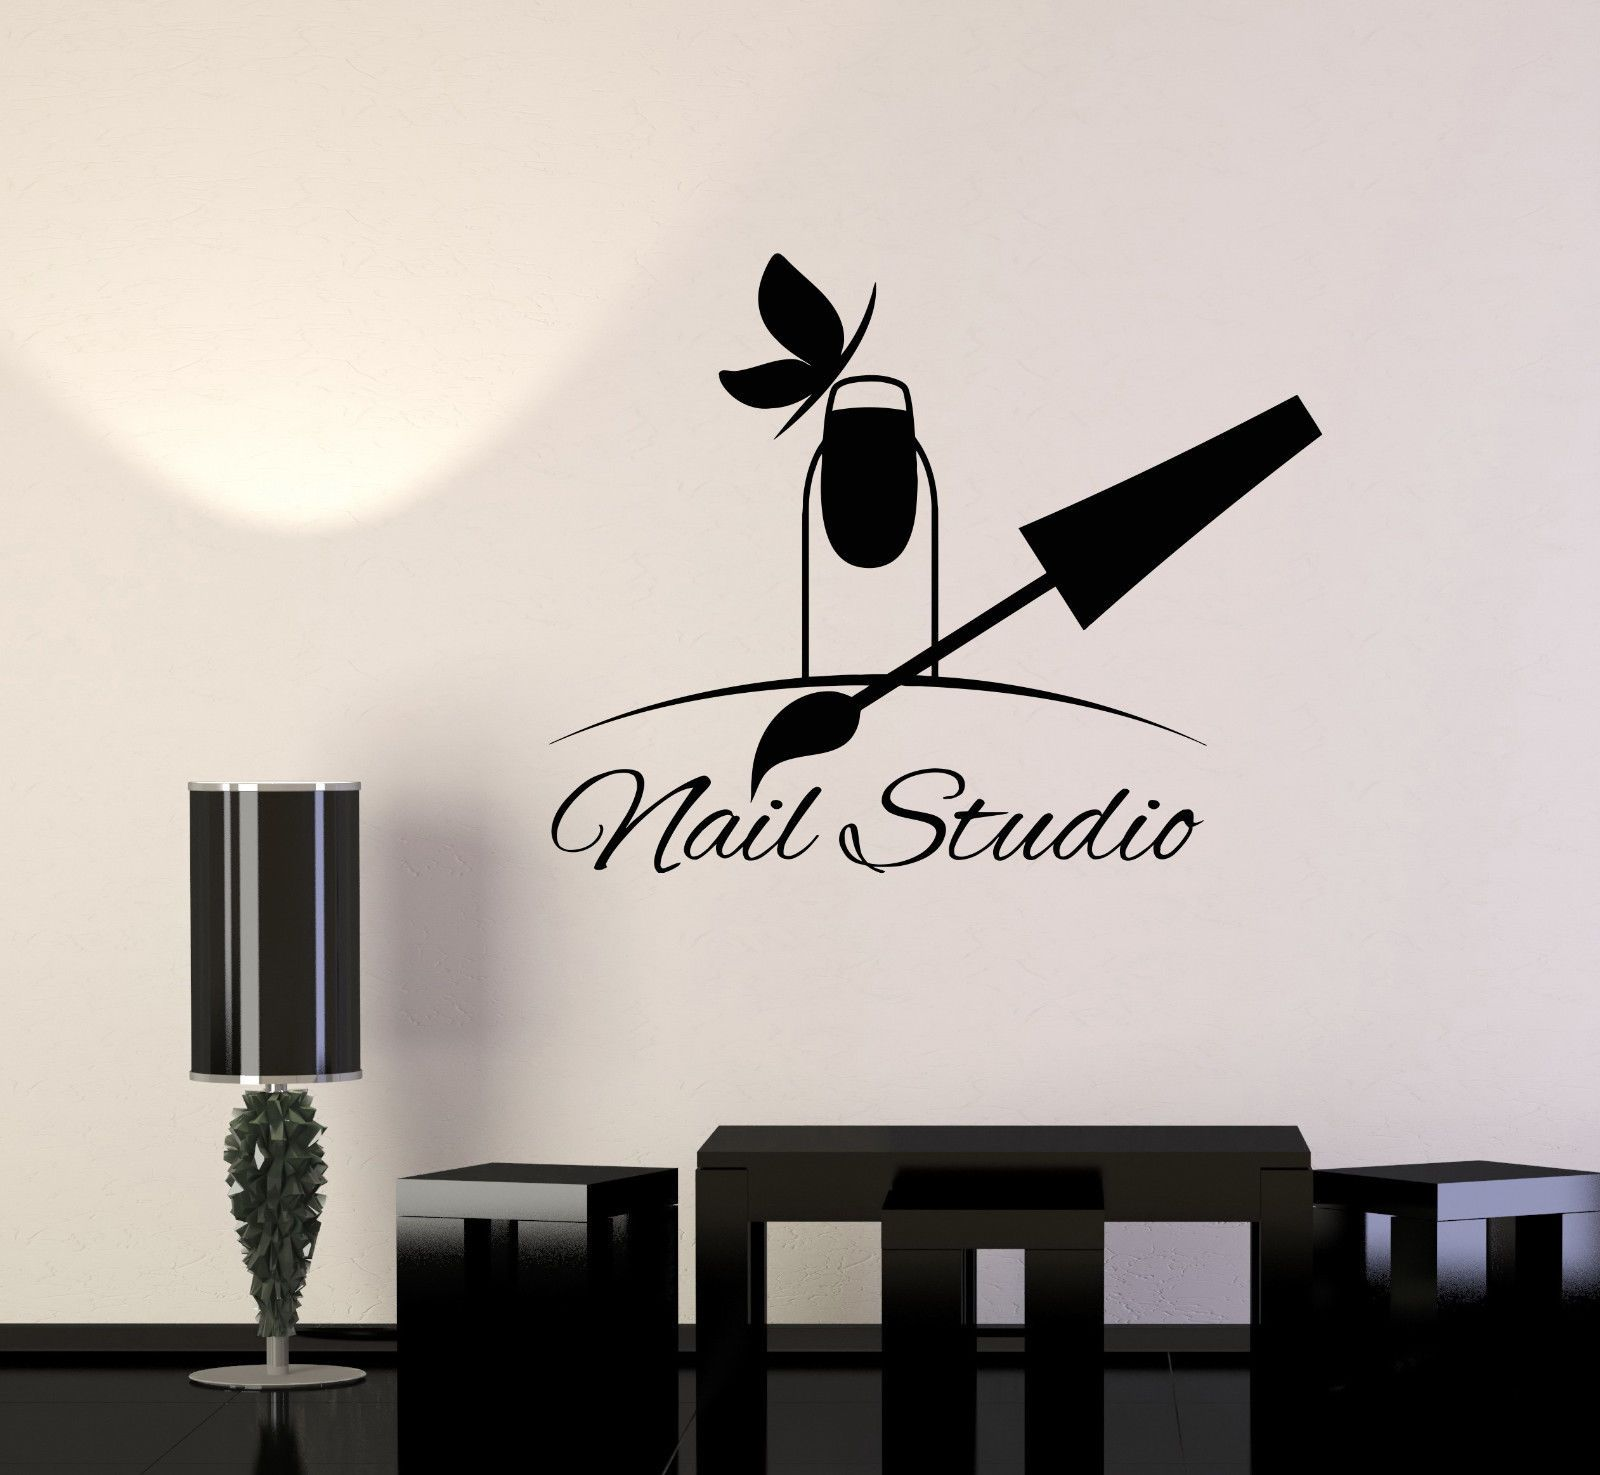 Details about Vinyl Wall Decal Nail Studio Manicure Beauty